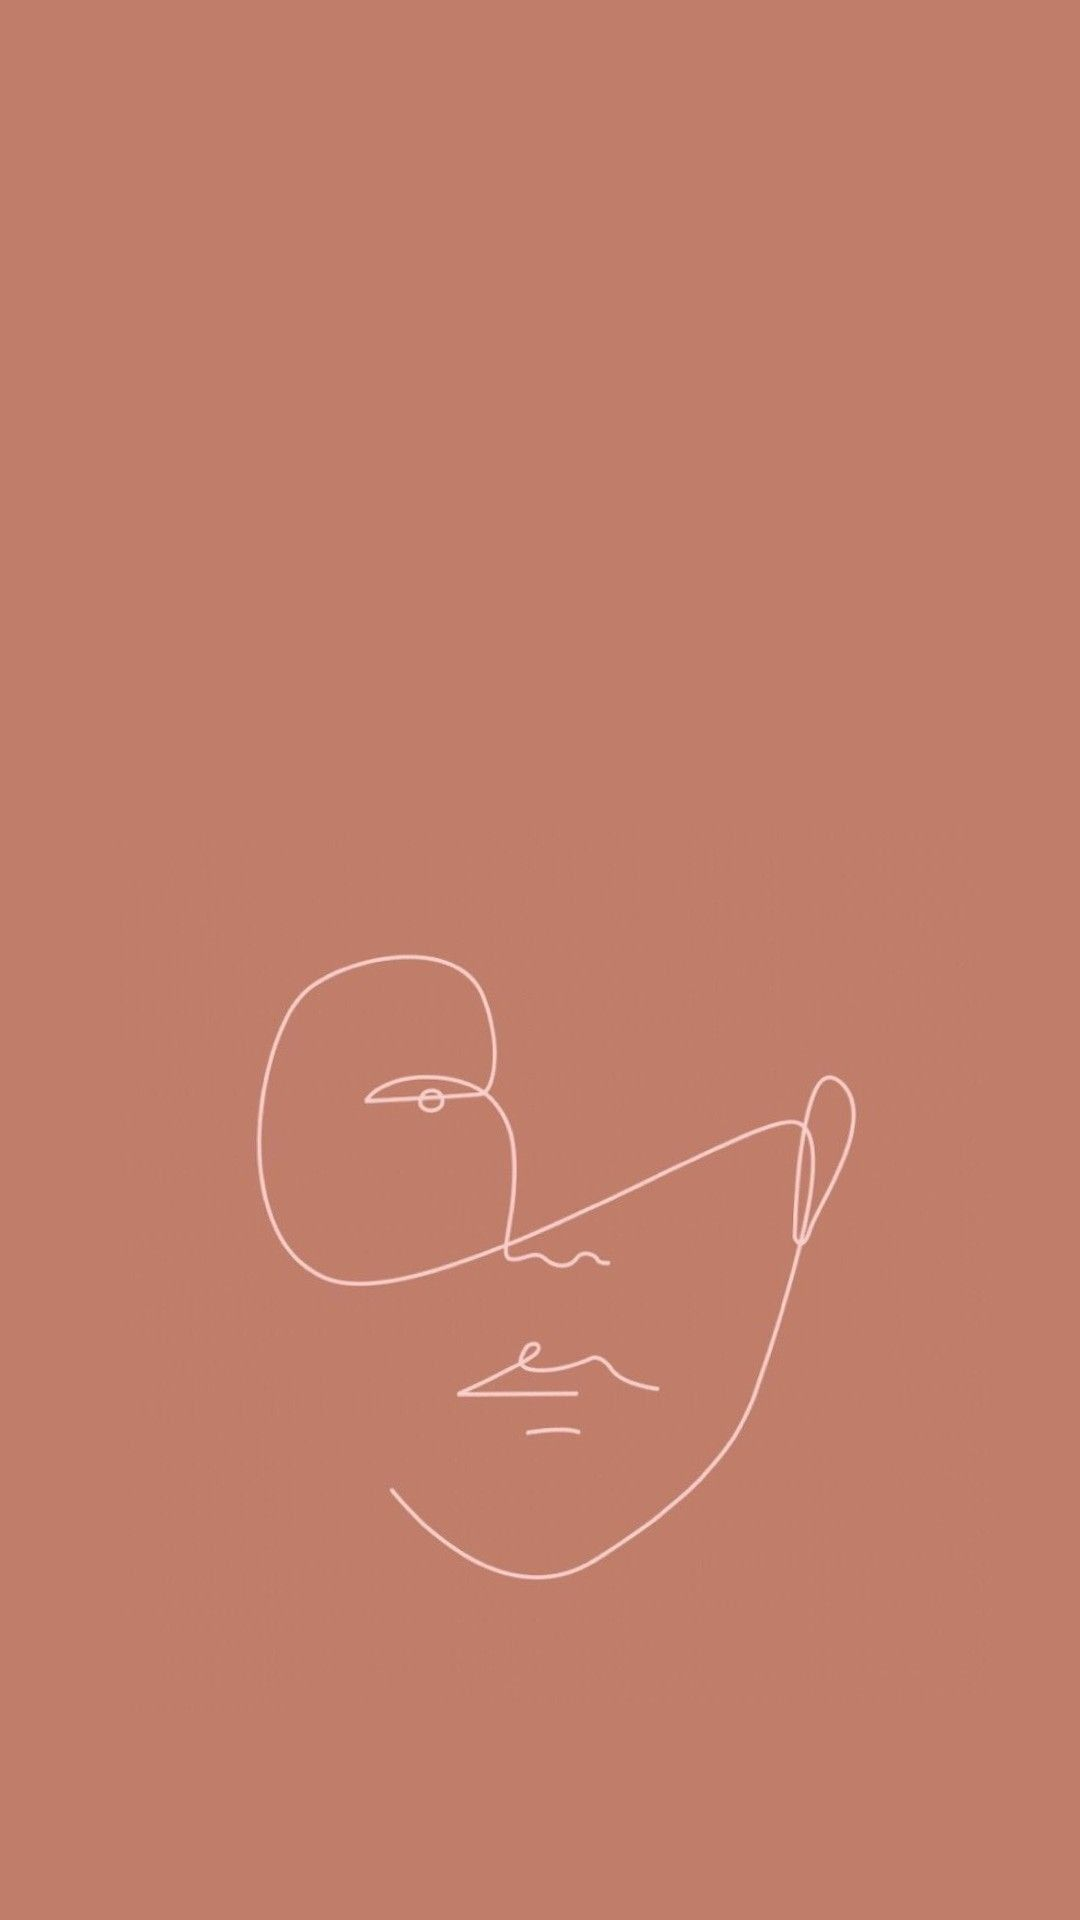 Pin by Jeon Jungkook 🌙 on Wallpapers in 2020 | Minimalist ...